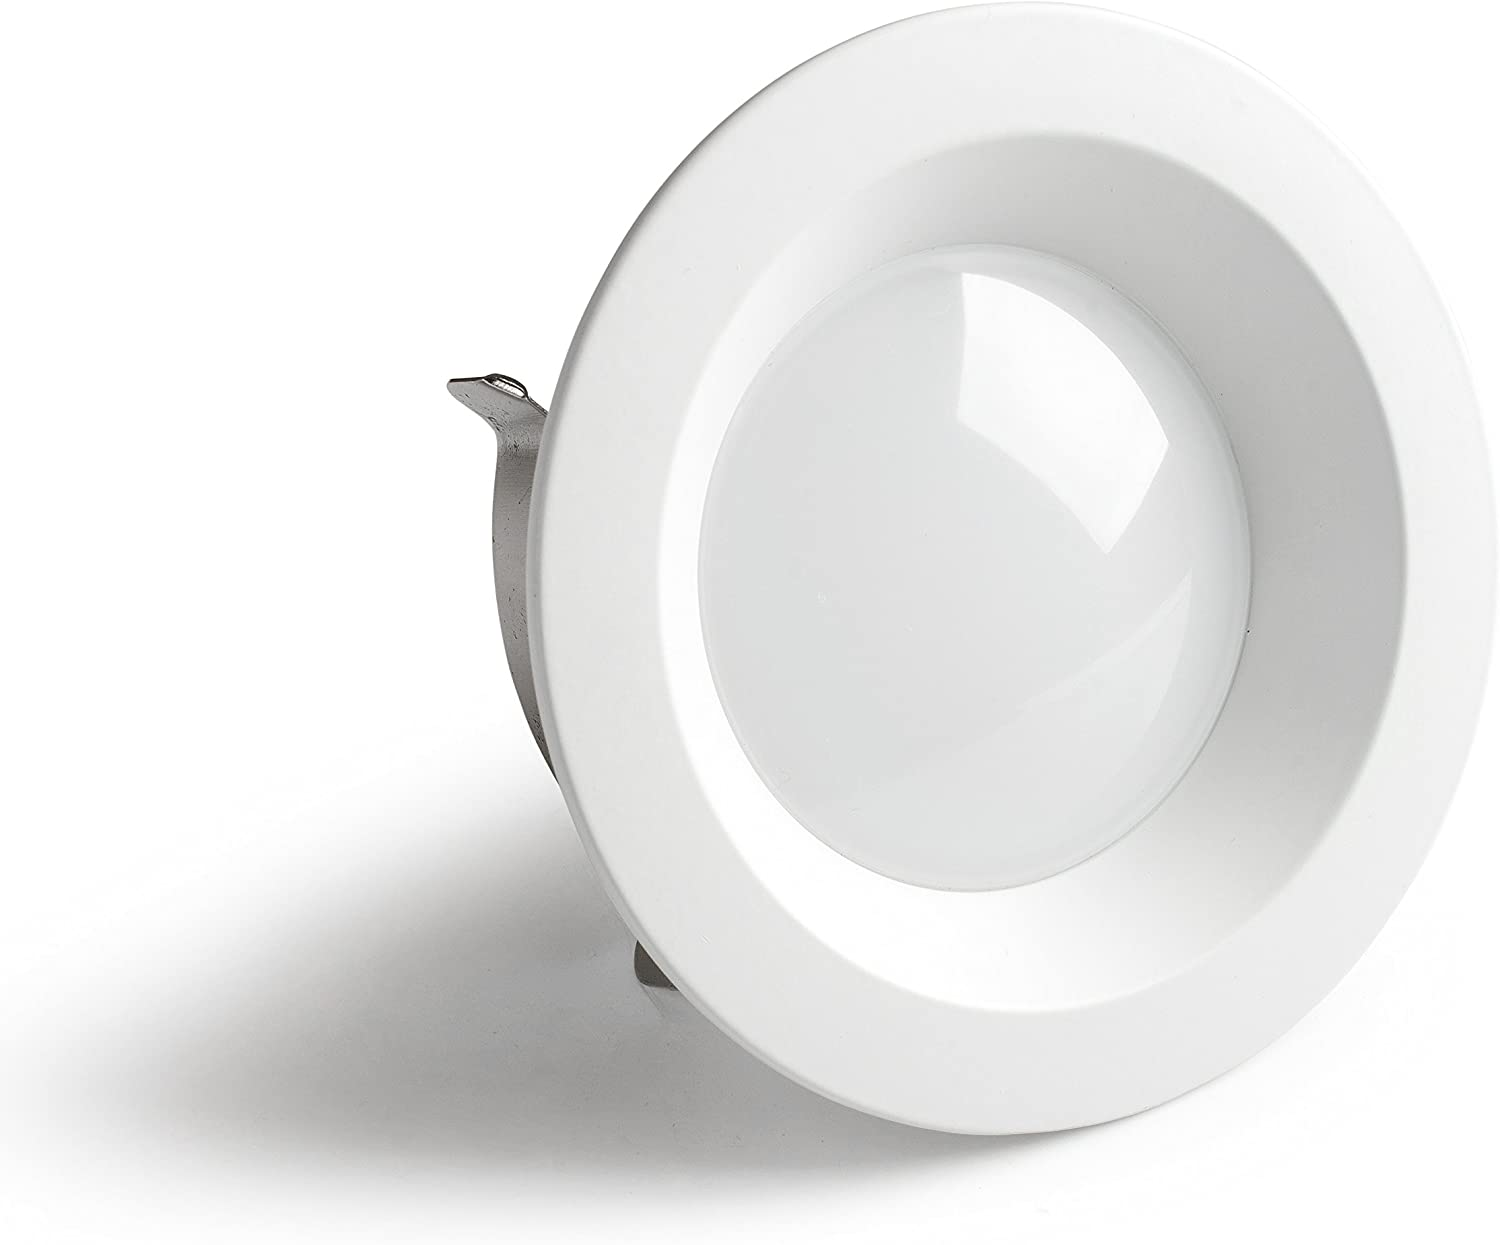 Warm White Circle Base 1150 Lumens Available in Warm White and Cool White Clarity Bathrooms Hallways 4 Inch Indoor Ceiling Lighting for Kitchens LED Recessed Retrofit Downlight Small